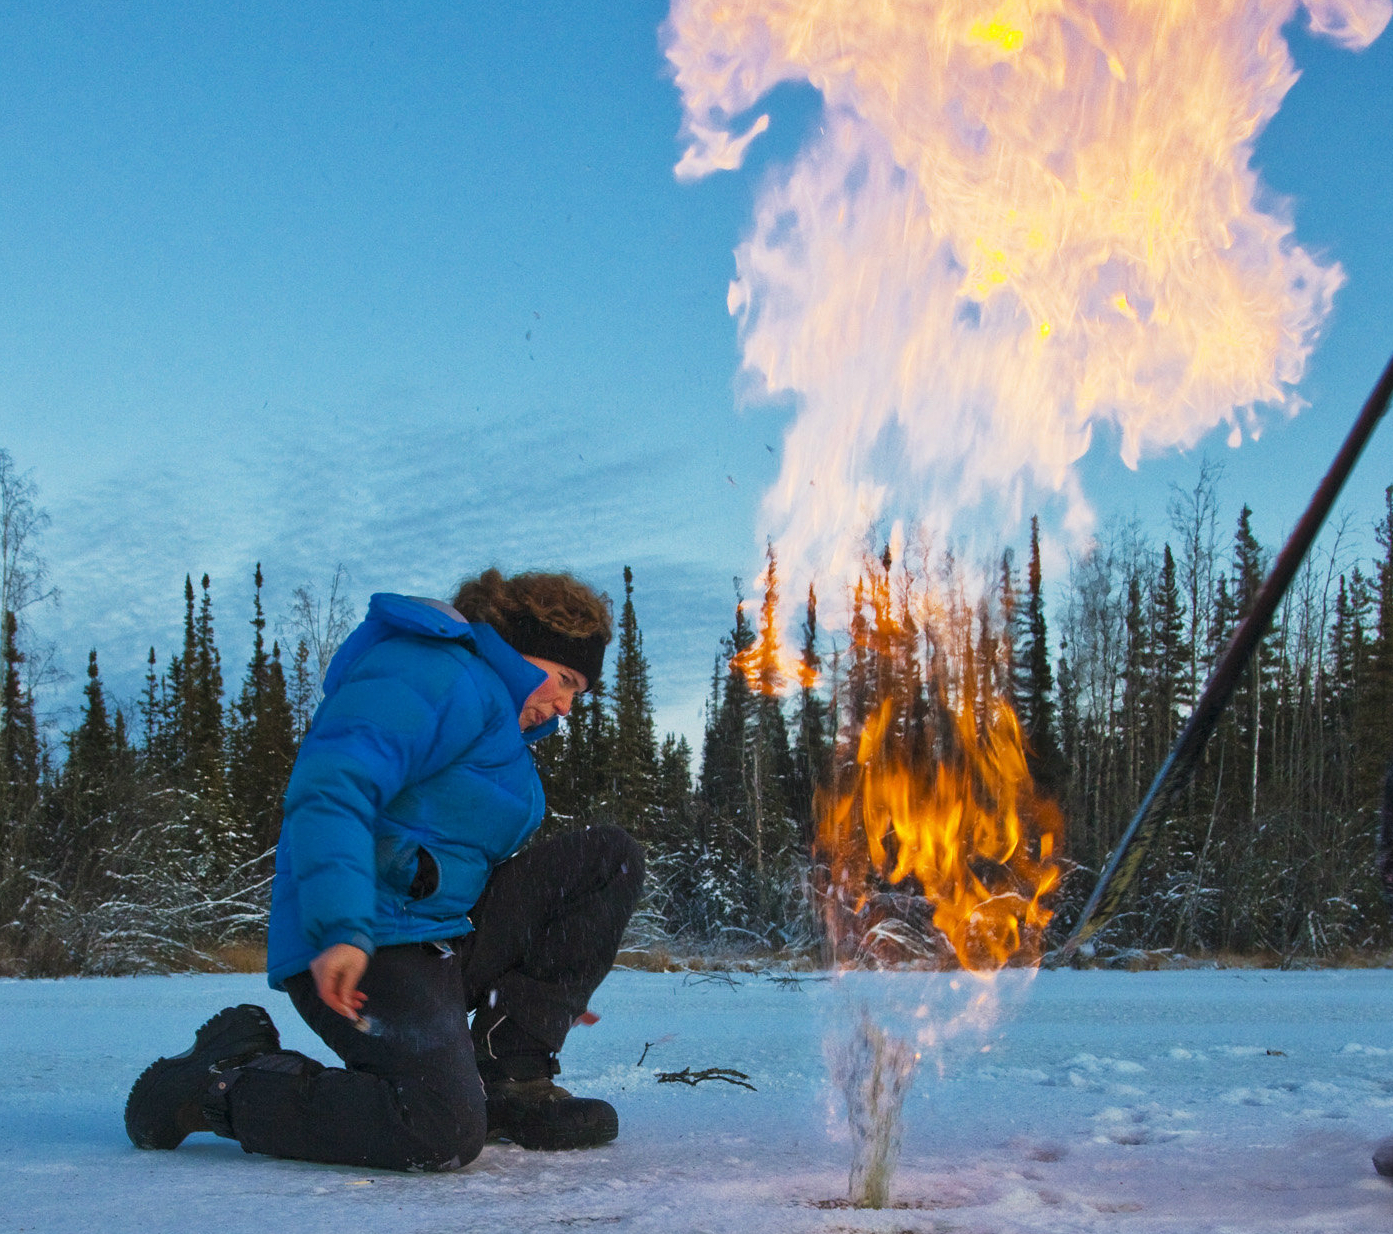 Permafrost thaw below Arctic lakes could be a much worse greenhouse gas source than previously thought